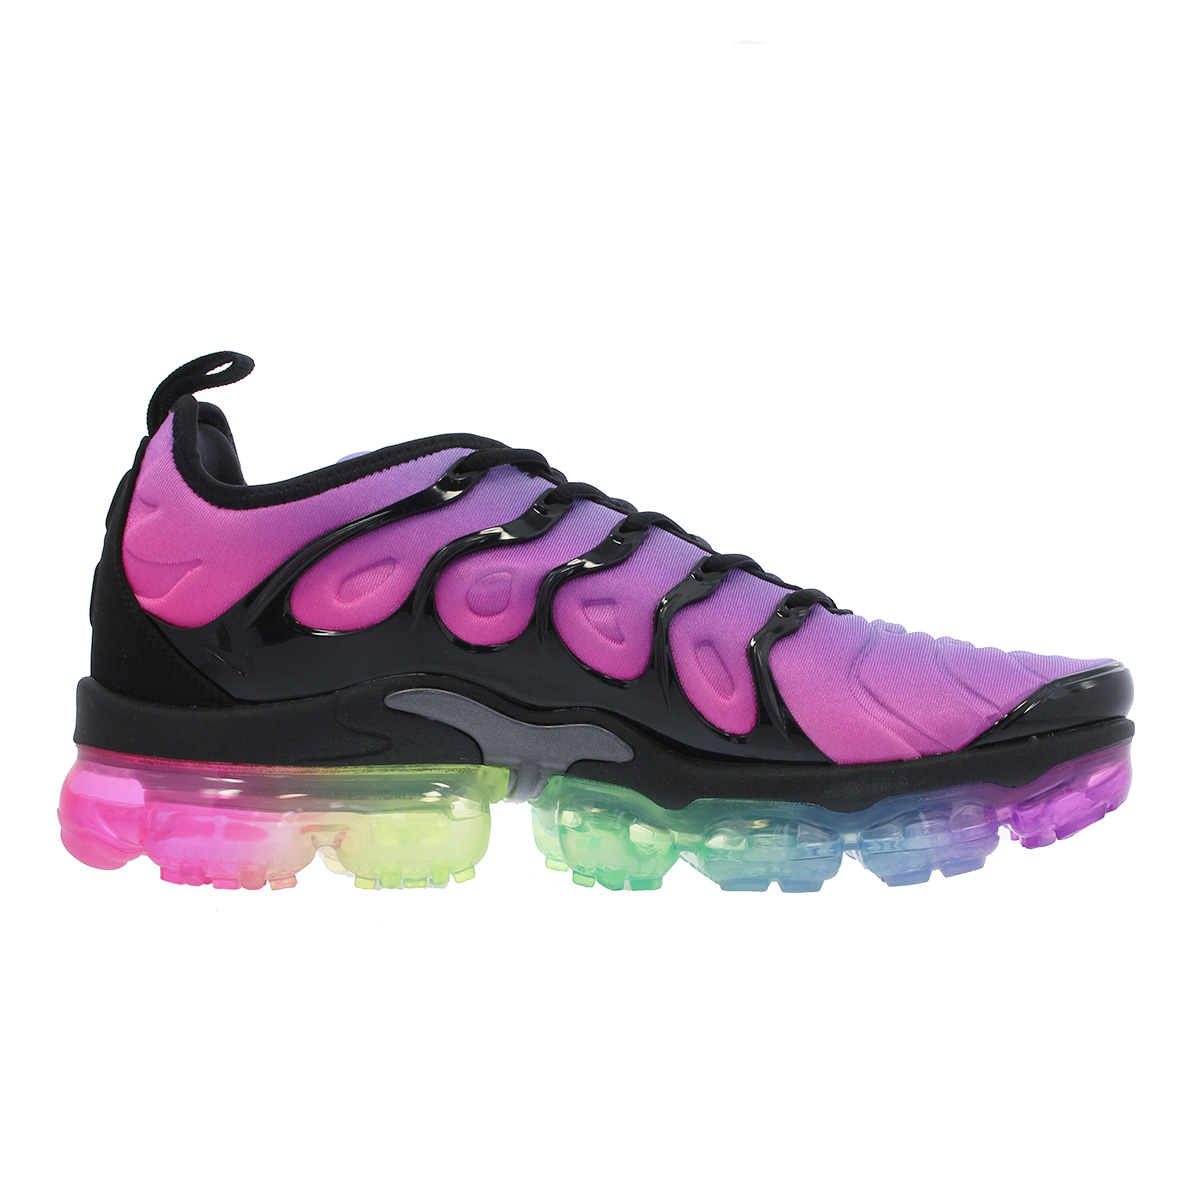 1518a0a3b1b67 NIKE AIR VAPORMAX PLUS Nike vapor max plus PURPLE PULSE PINK BLAST MULTI  COLOR BLACK ar4791-500